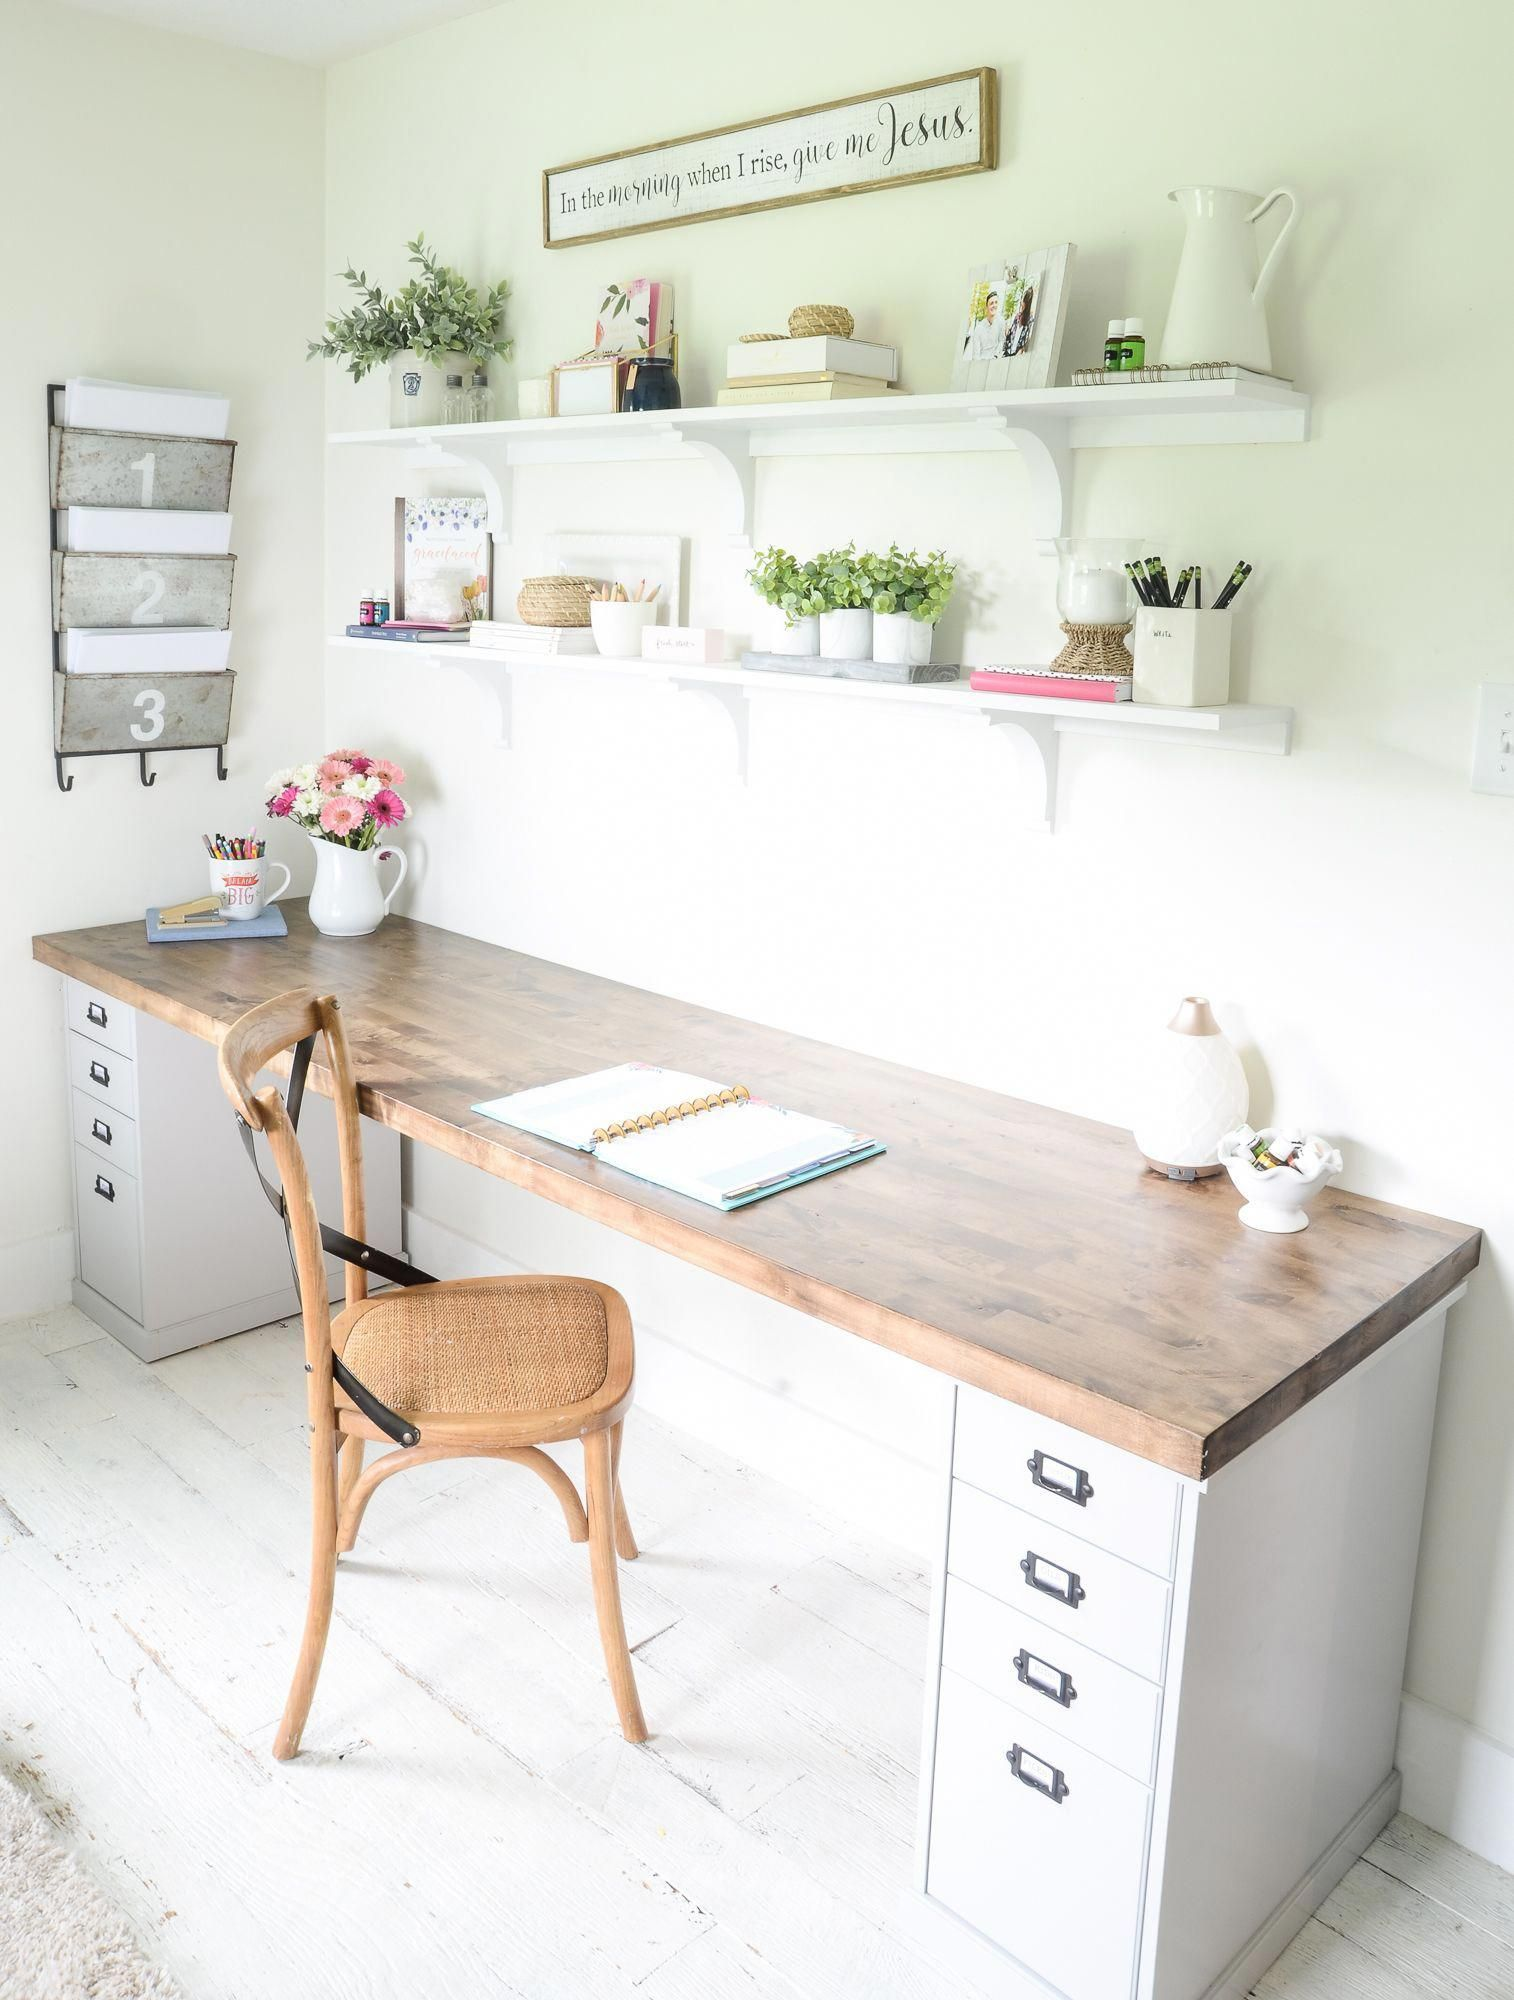 Diy Butcher Block Desk For My Home Office Homedesign Ideeen